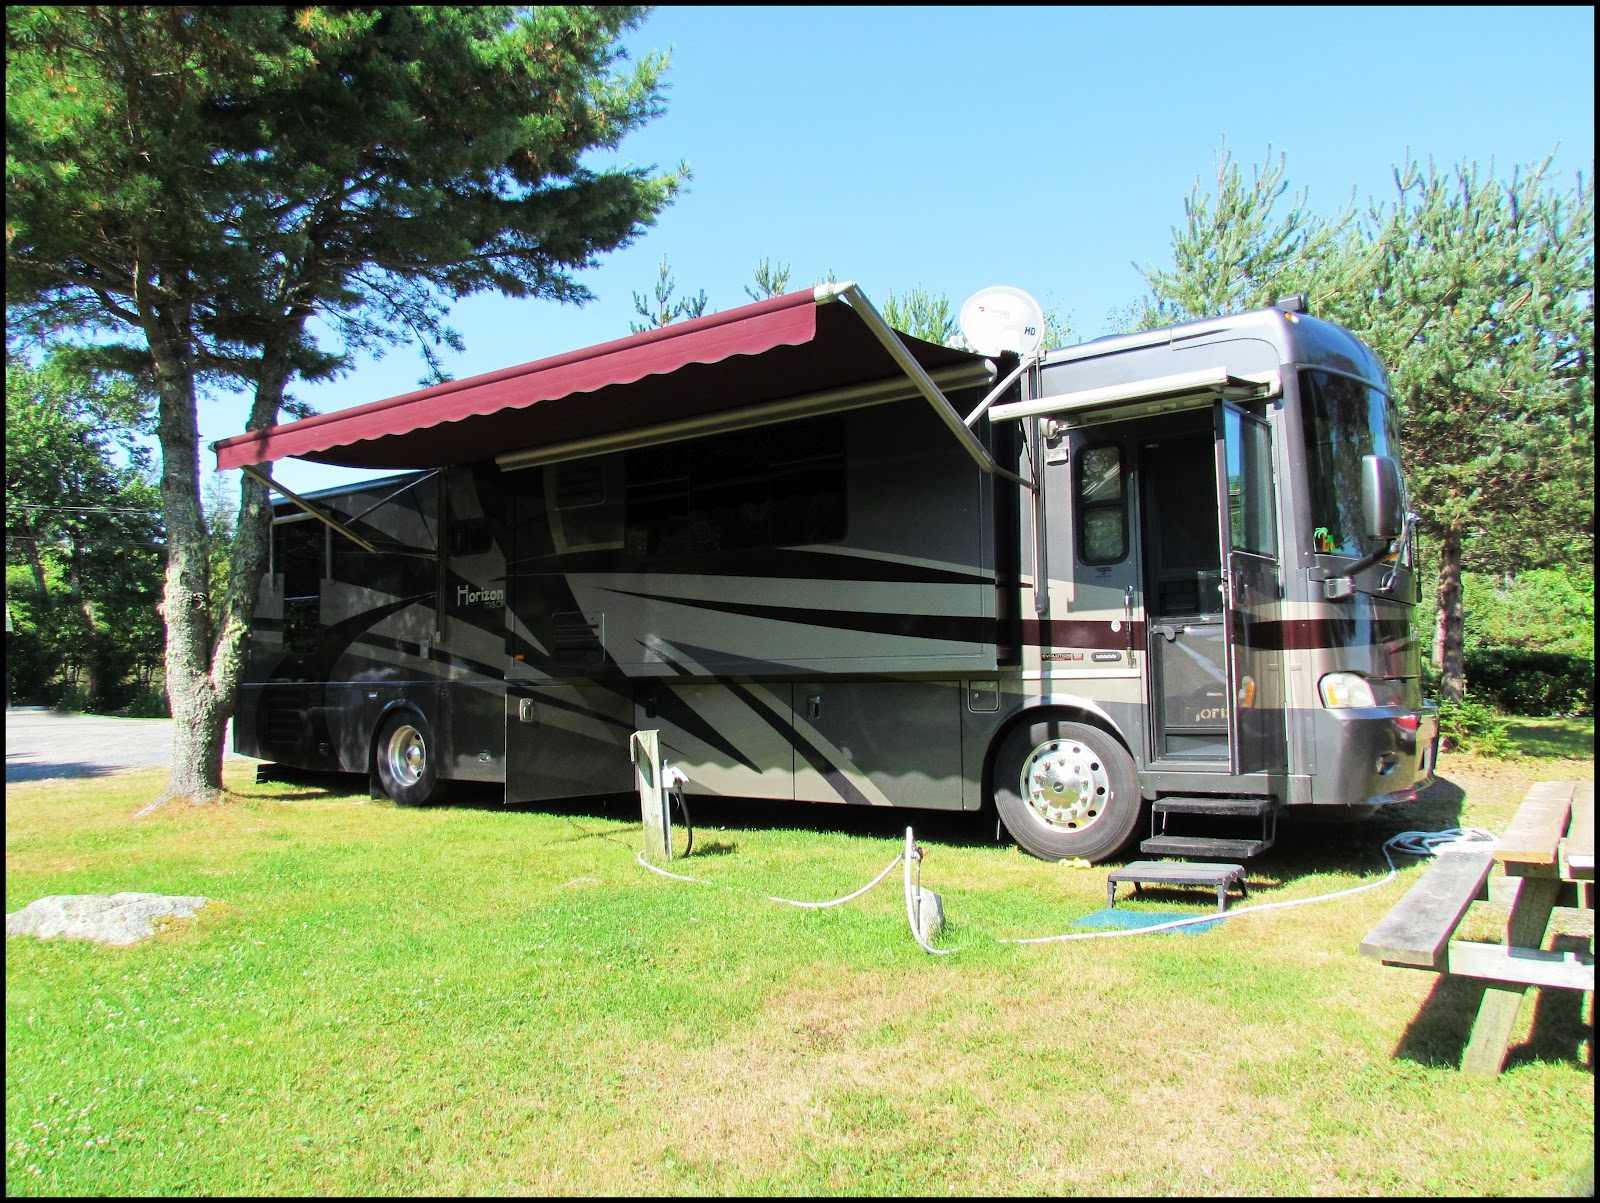 Tassies Campground Reviews 50 Amp Rv Hookup Favorite Sites We Stayed On Site 148 And Even Though The Hook Ups Were Right Side Of Coach Sewer Left Our Was So Nice